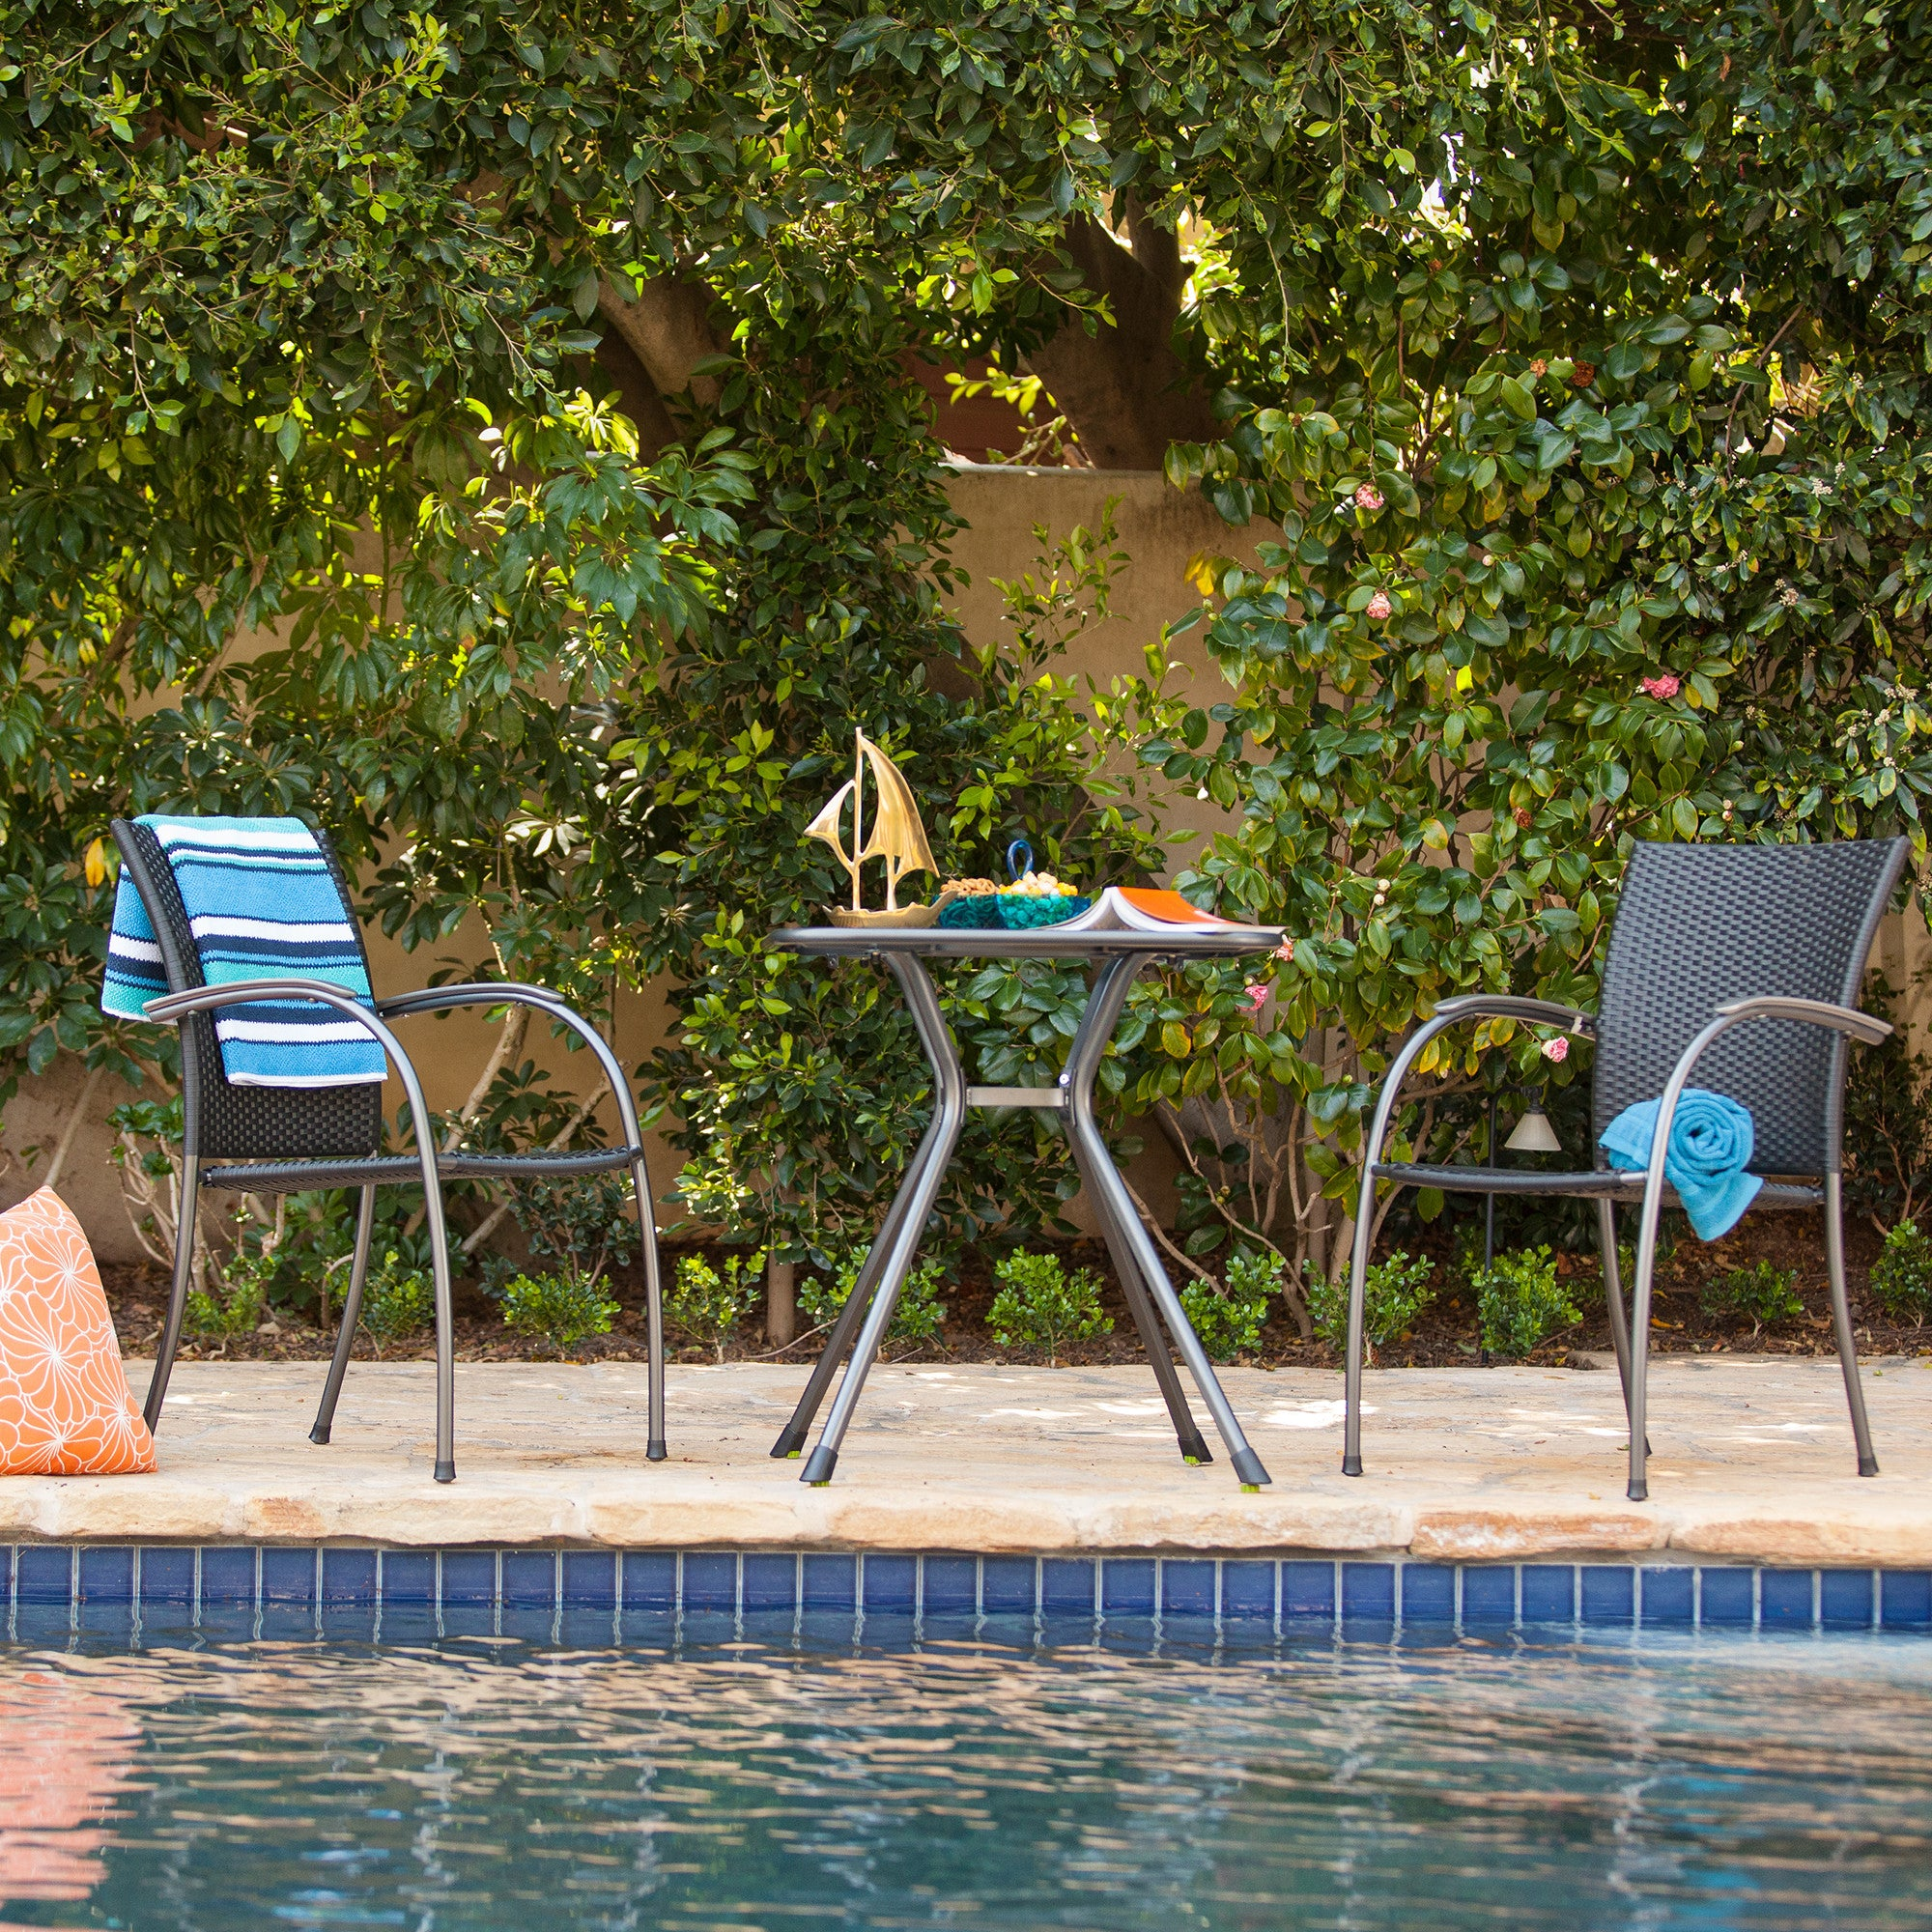 Ludwig 3 Piece Patio Bistro Set with Stacking Chairs  Square Table. Royal Garden Patio Furniture   Your Outdoor Furniture Store